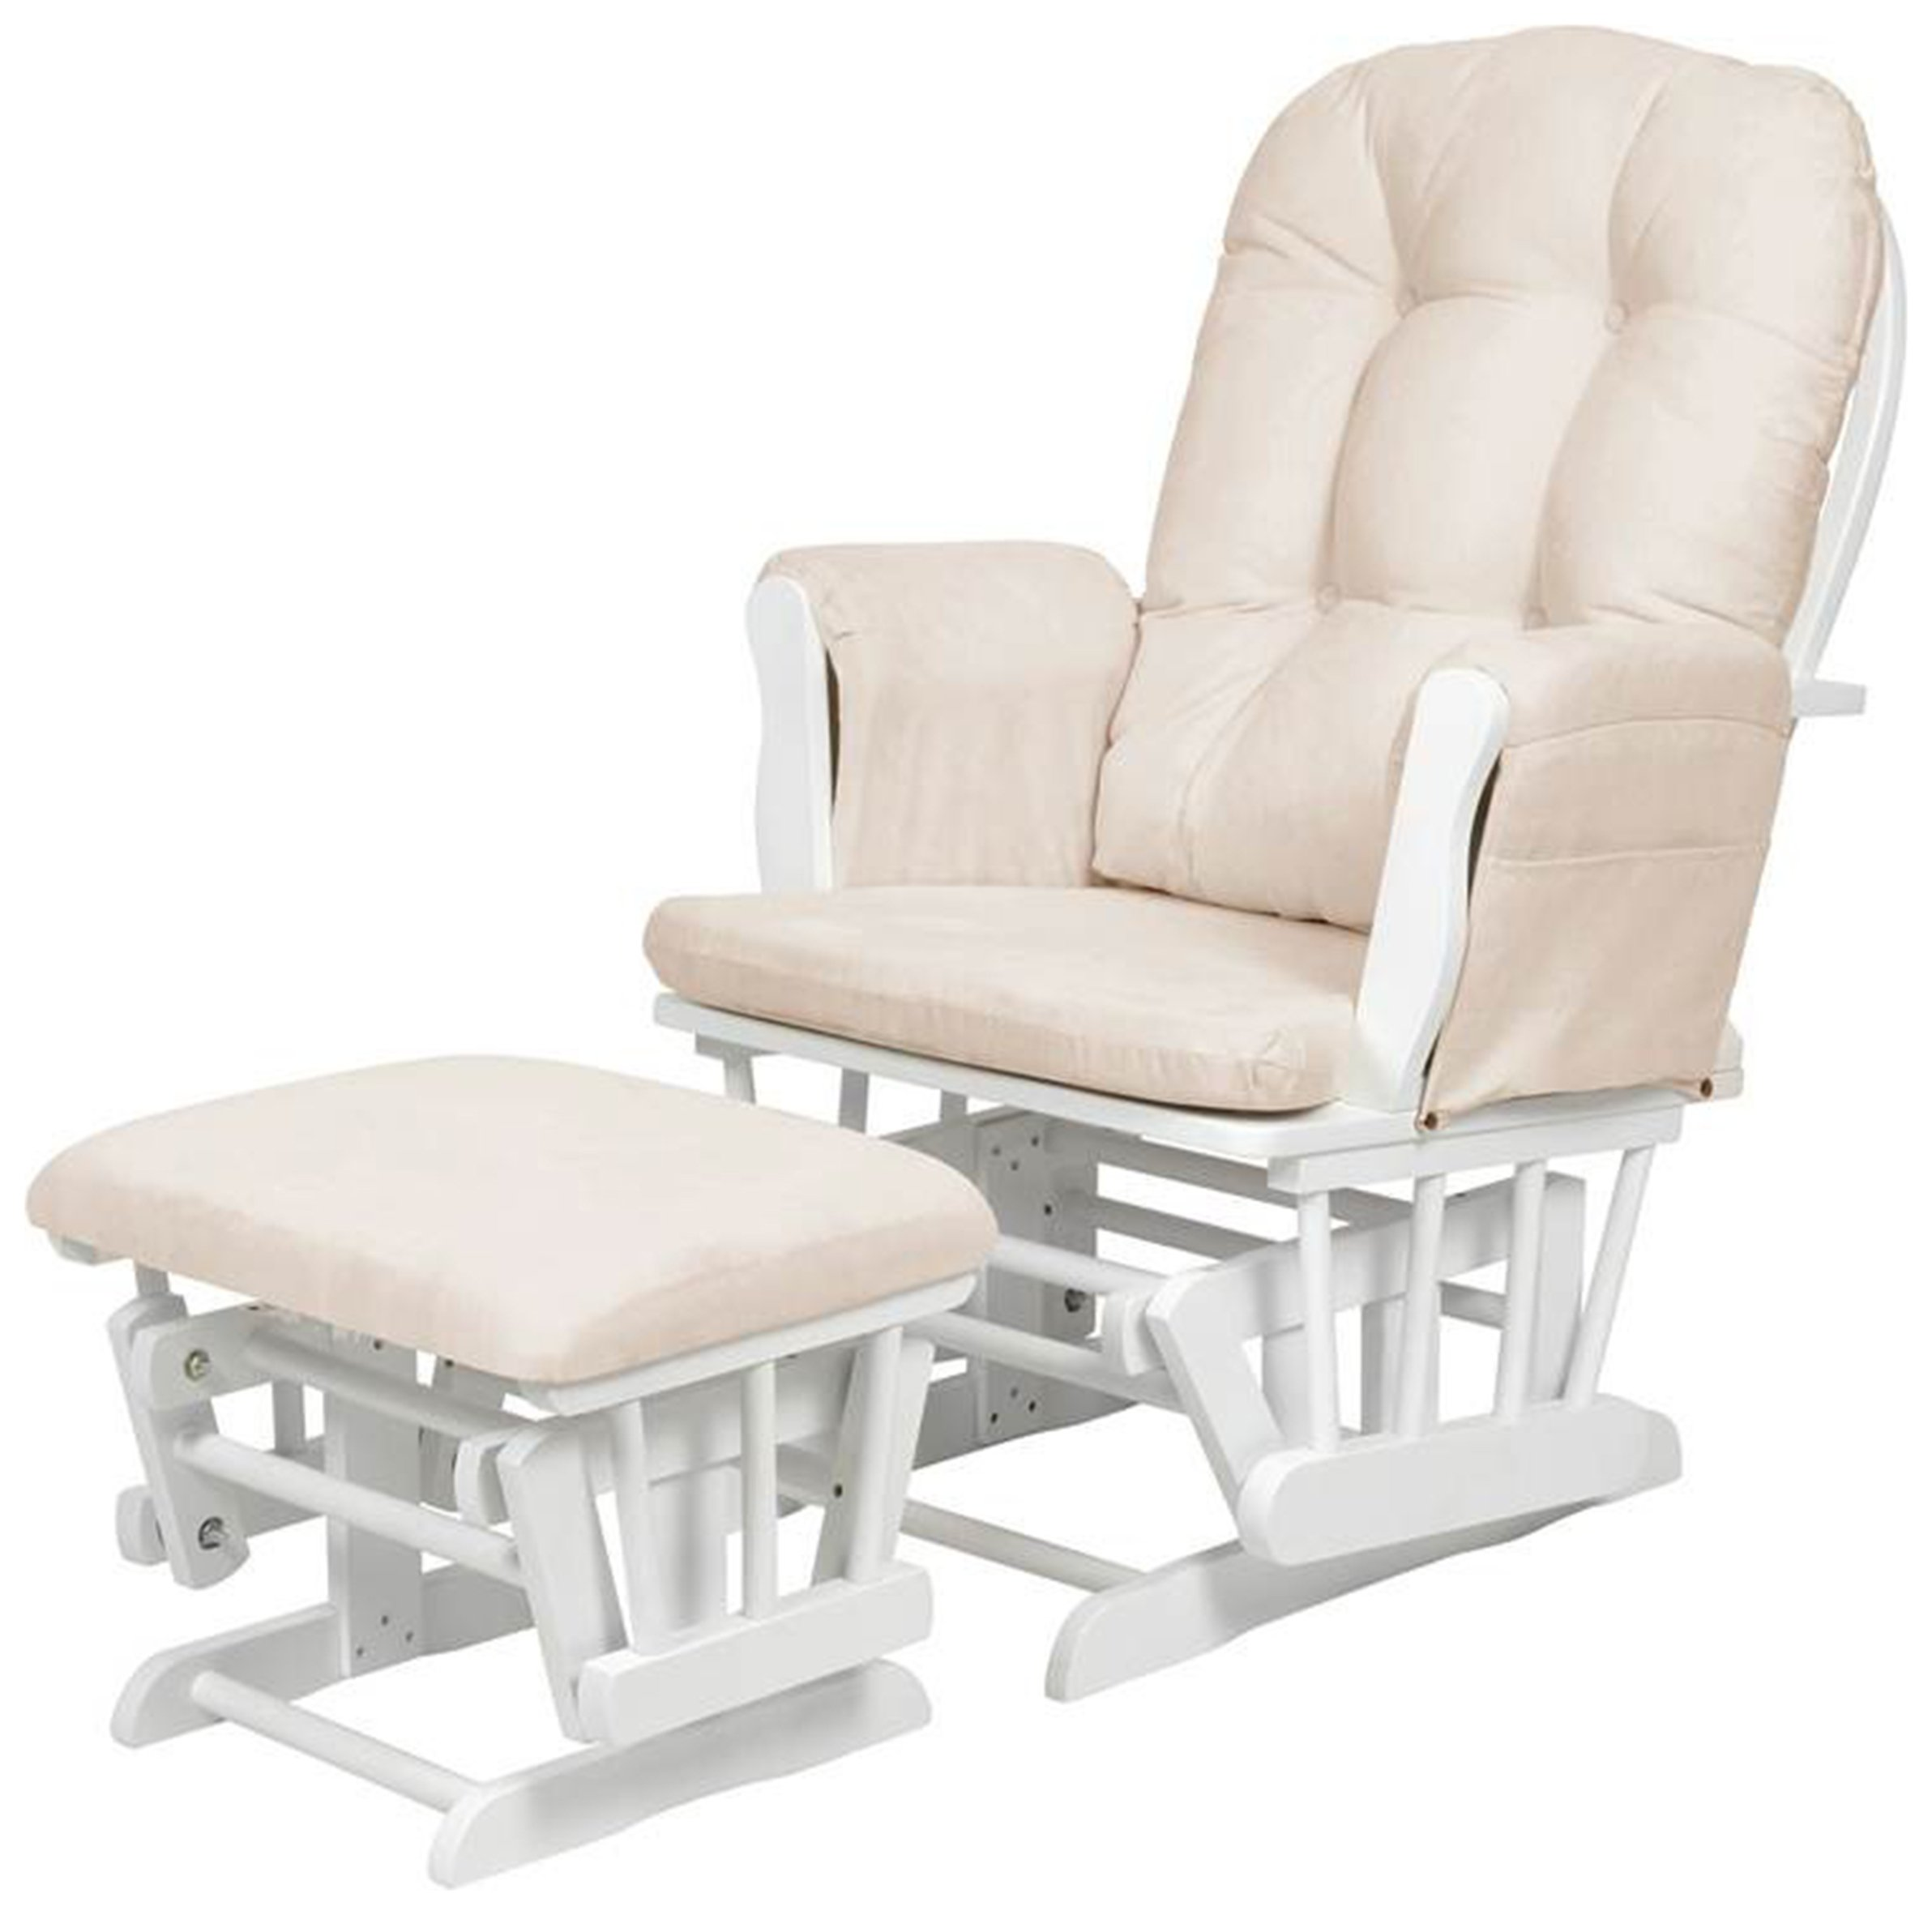 Baby Nursing Chair Nursing Chair Baby Nursing Chairs Nursing Chair Home Page